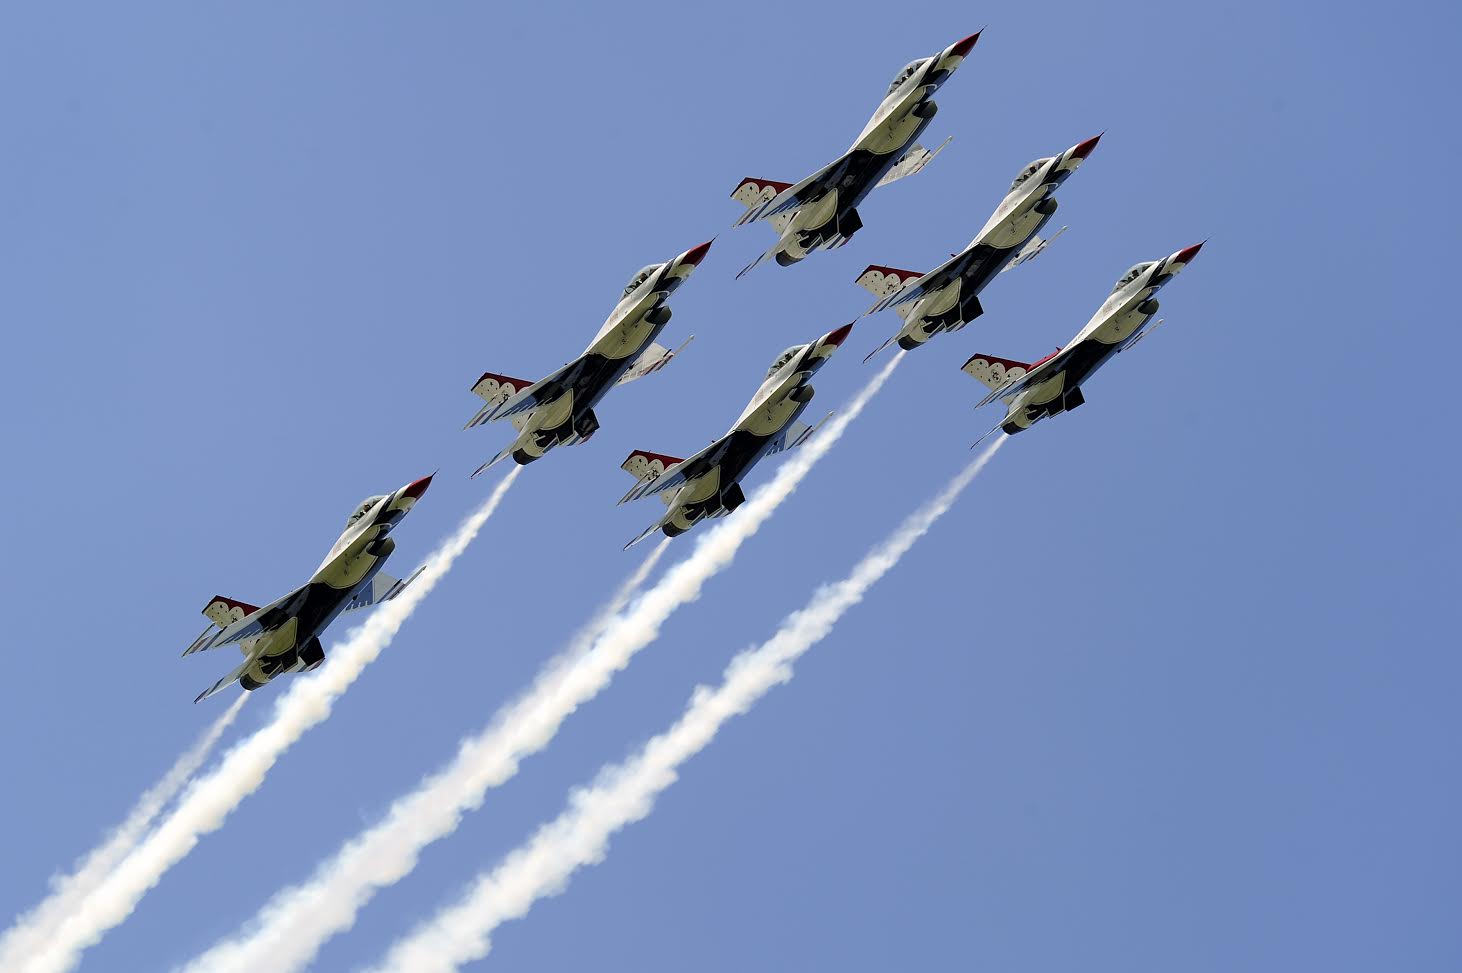 The USAF Thunderbirds demonstration team in action